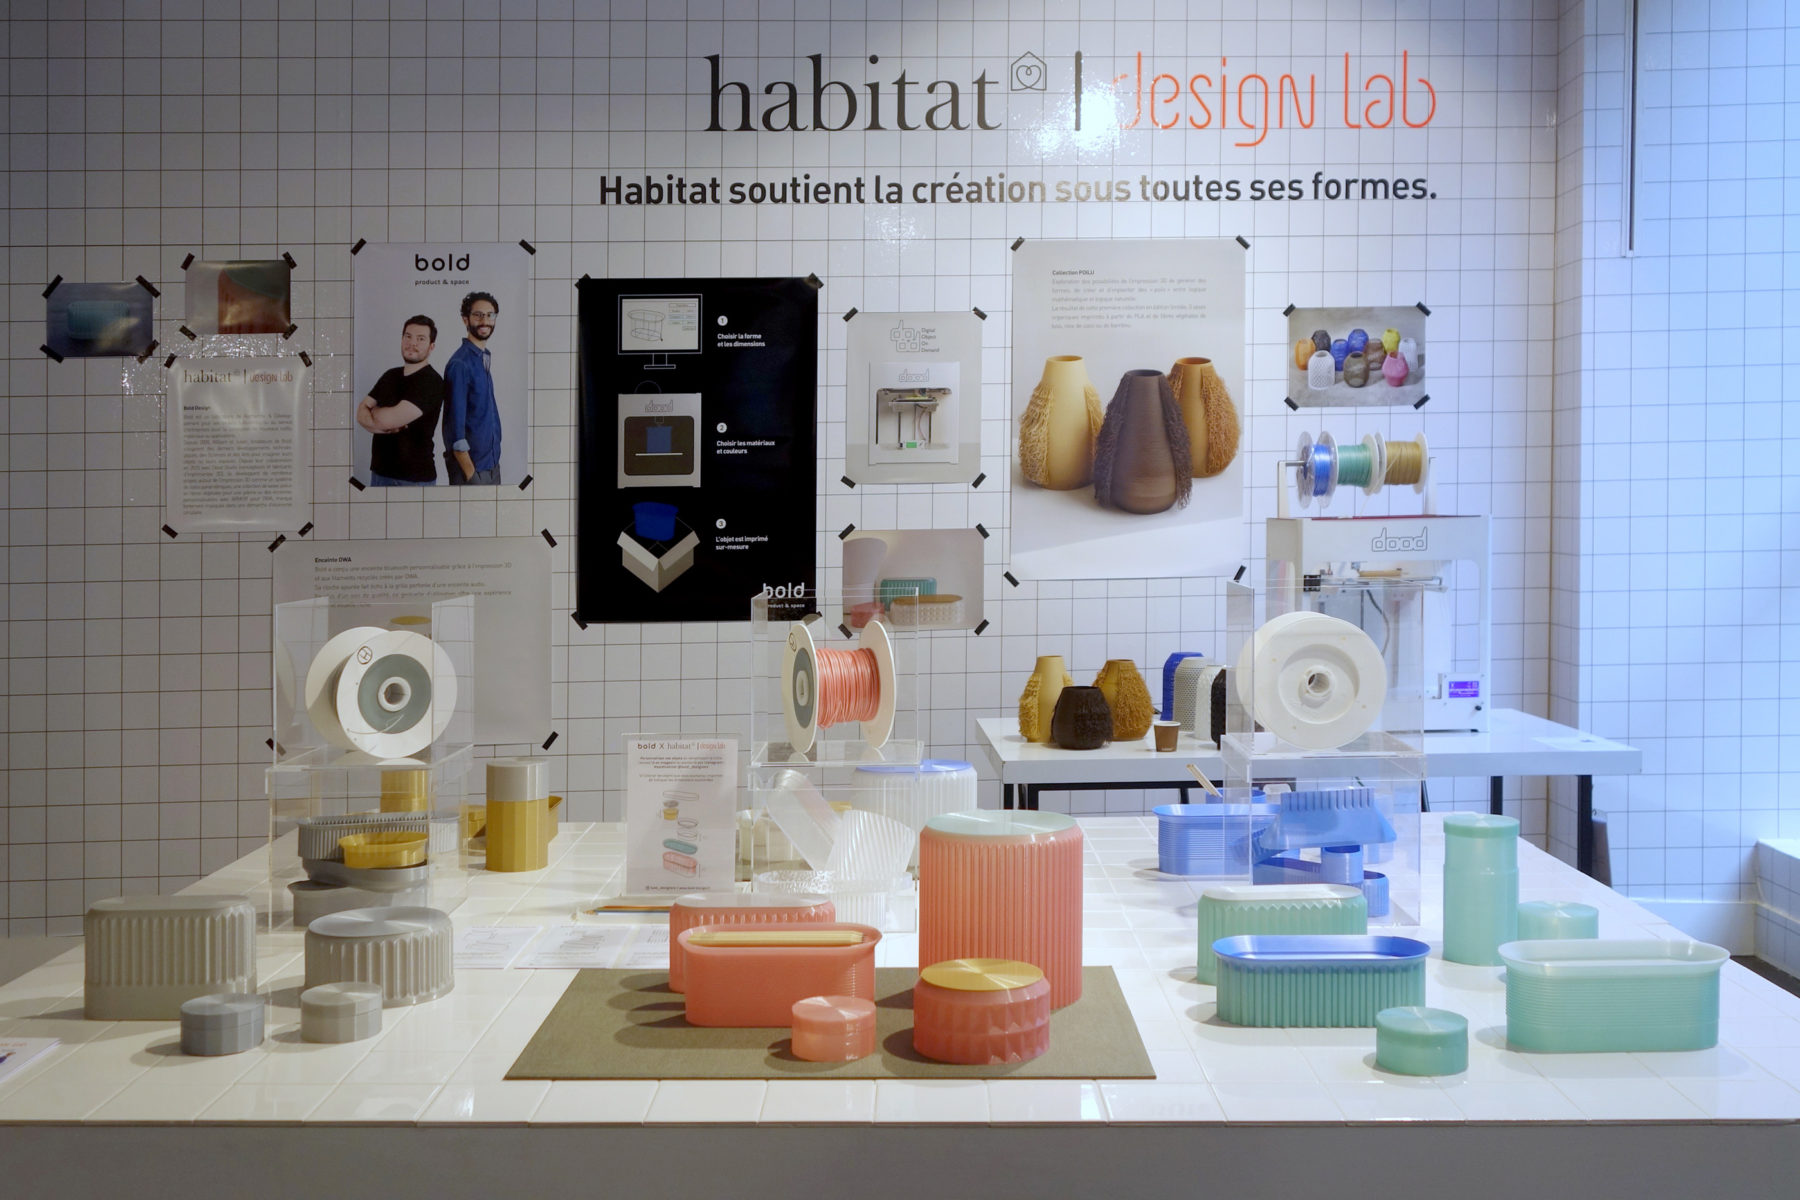 Habitat Design Lab - bold-design.fr